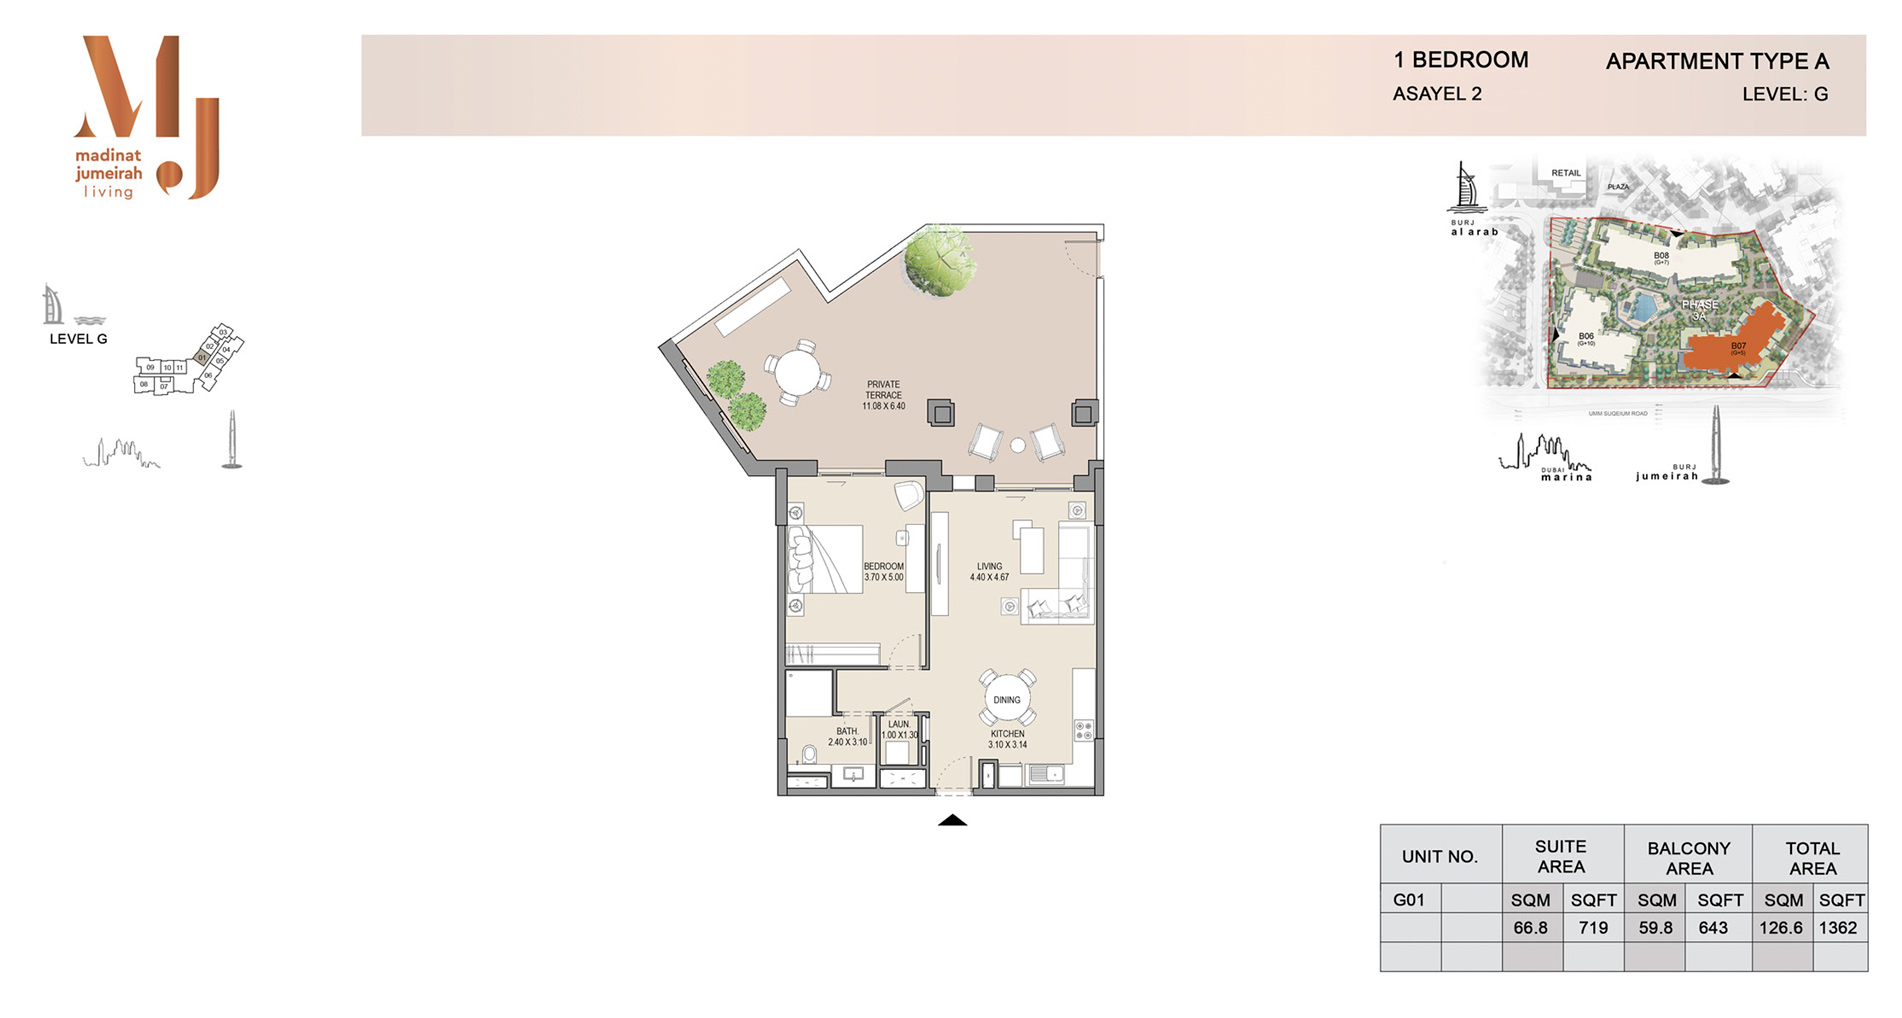 Building-2, 1 Bed Type A Level G, Size 1362    sq. ft.